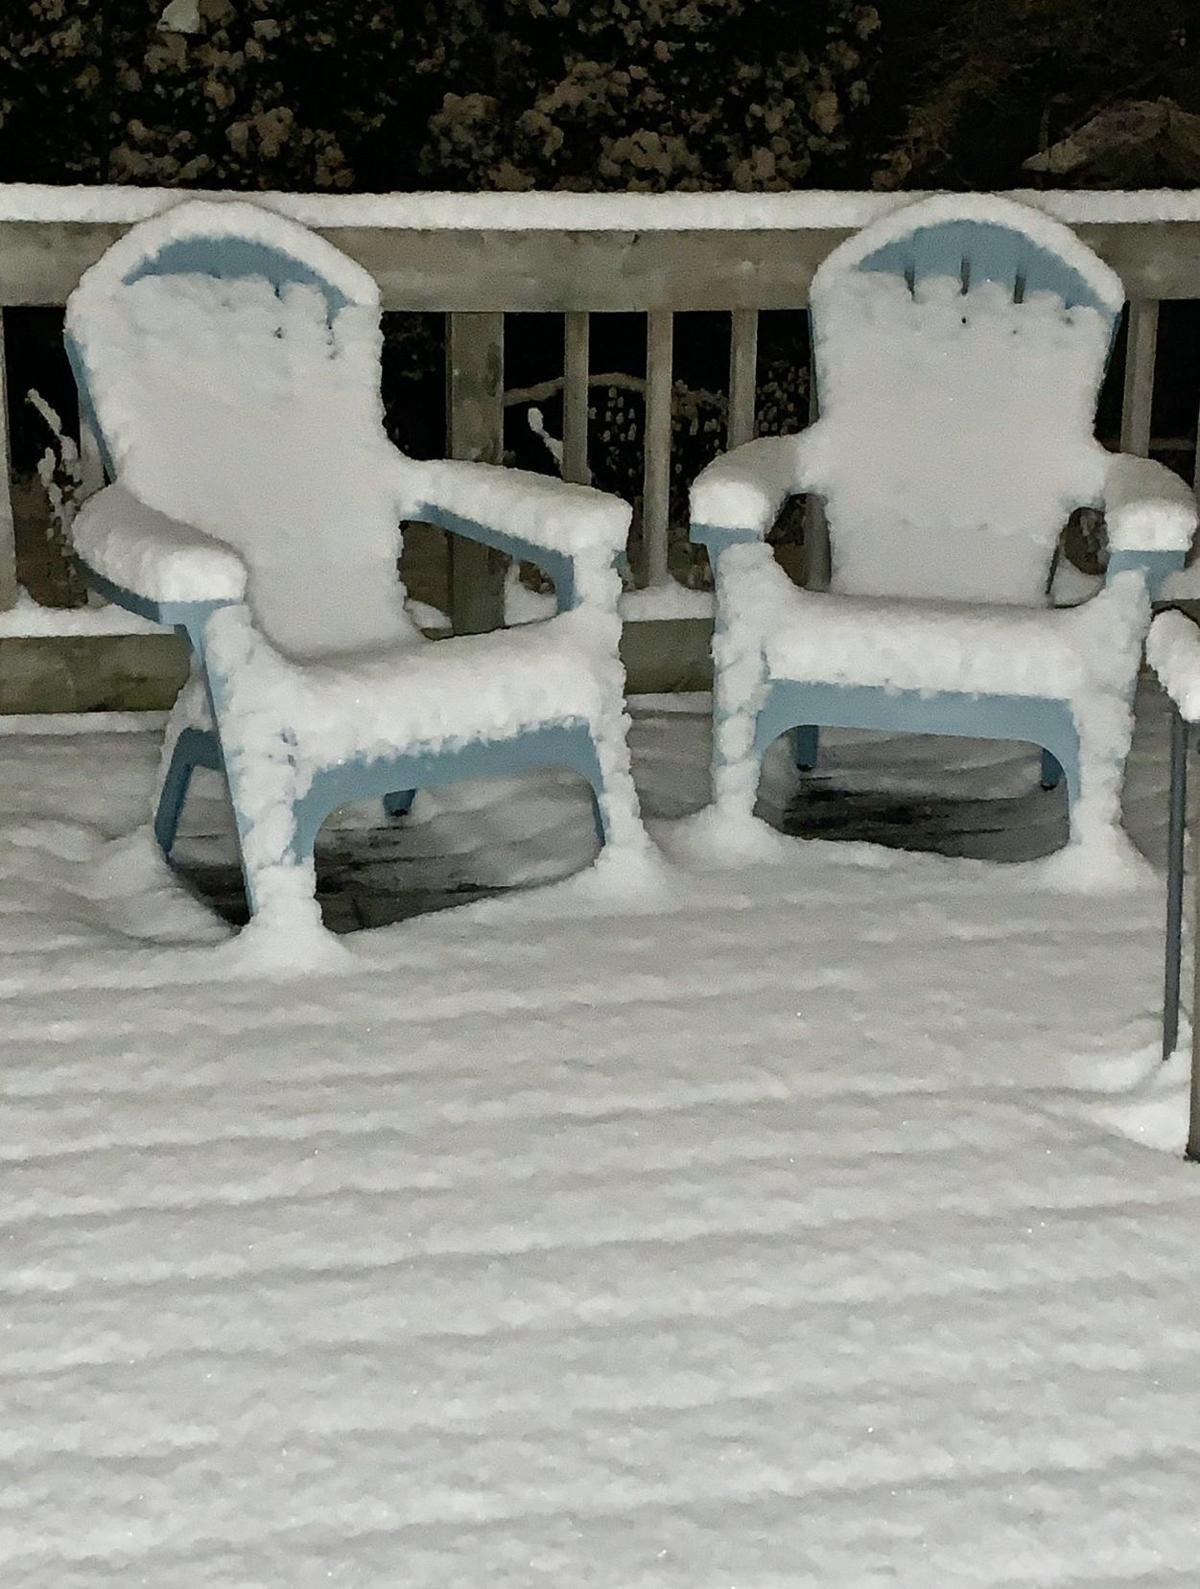 Lawn chairs first snow, Madison.com photo